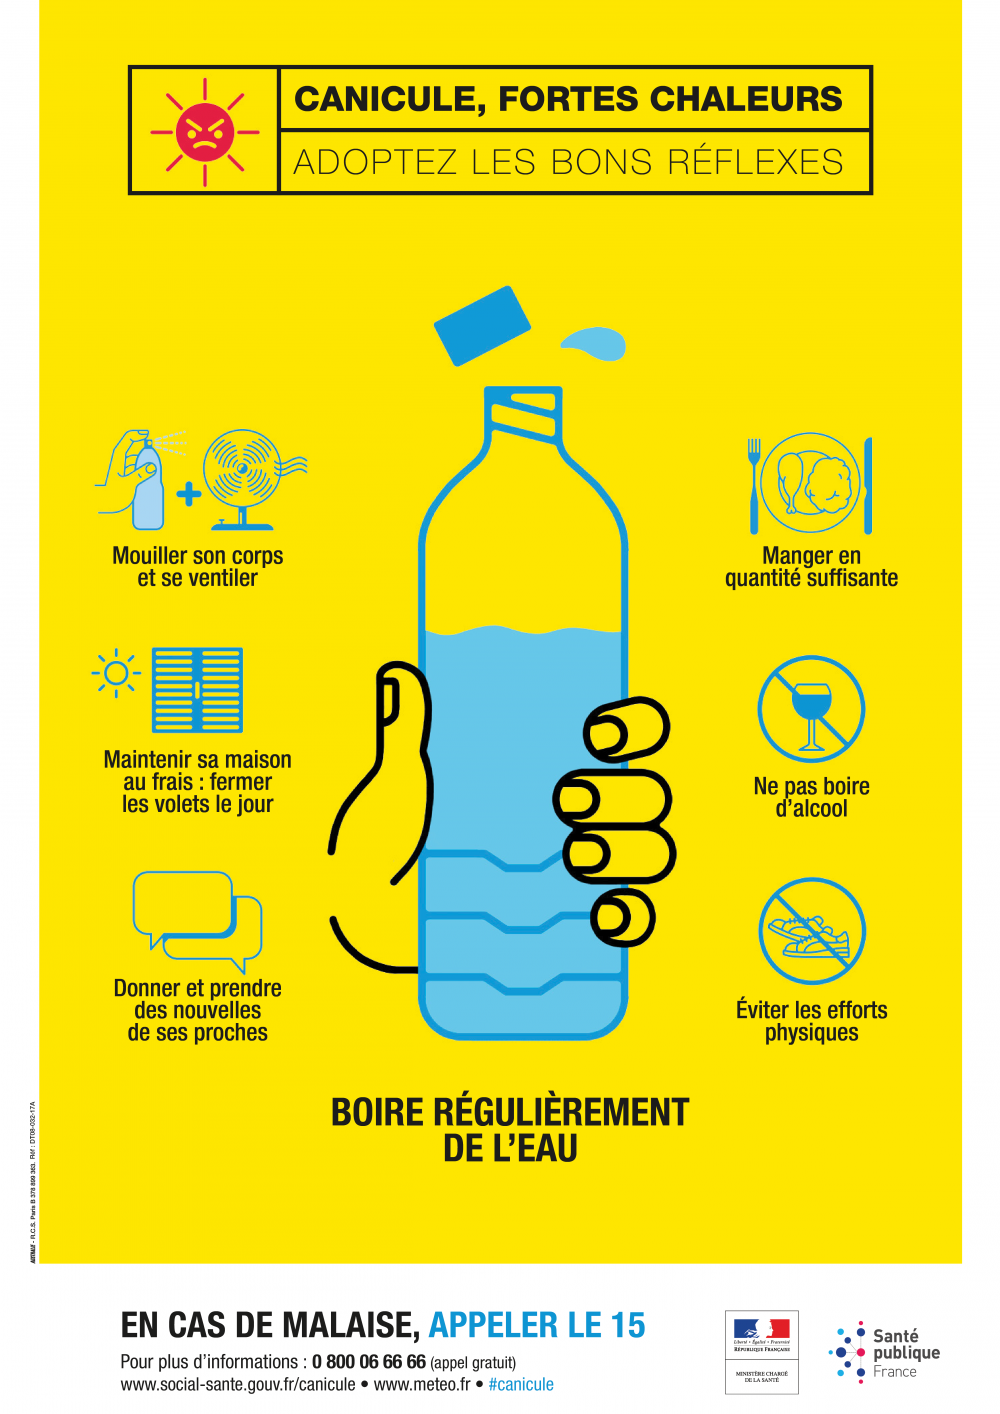 affiches_canicule_gouv_fr.png